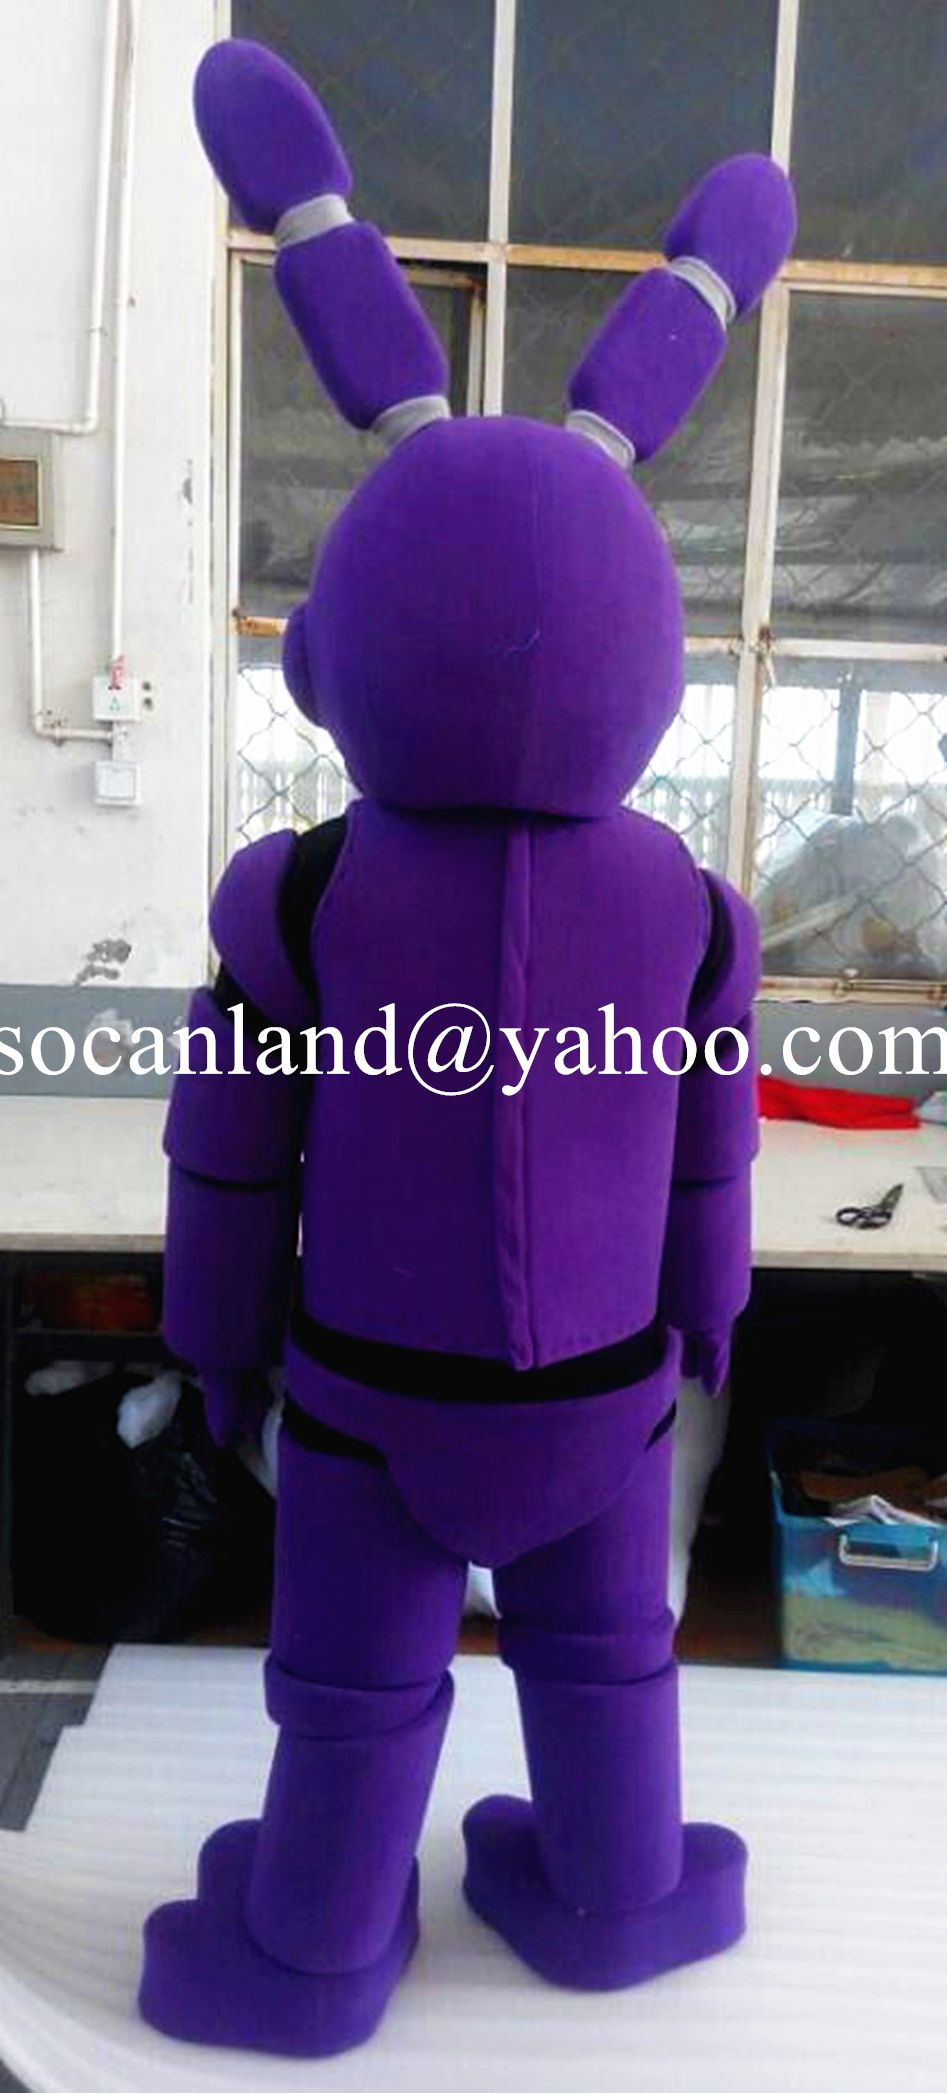 Fnaf bonnie costume for sale - Toy Bonnie Mascot Costume From Five Nights At Freddy S Toy Bonnie Cosply Costumes For Halloween